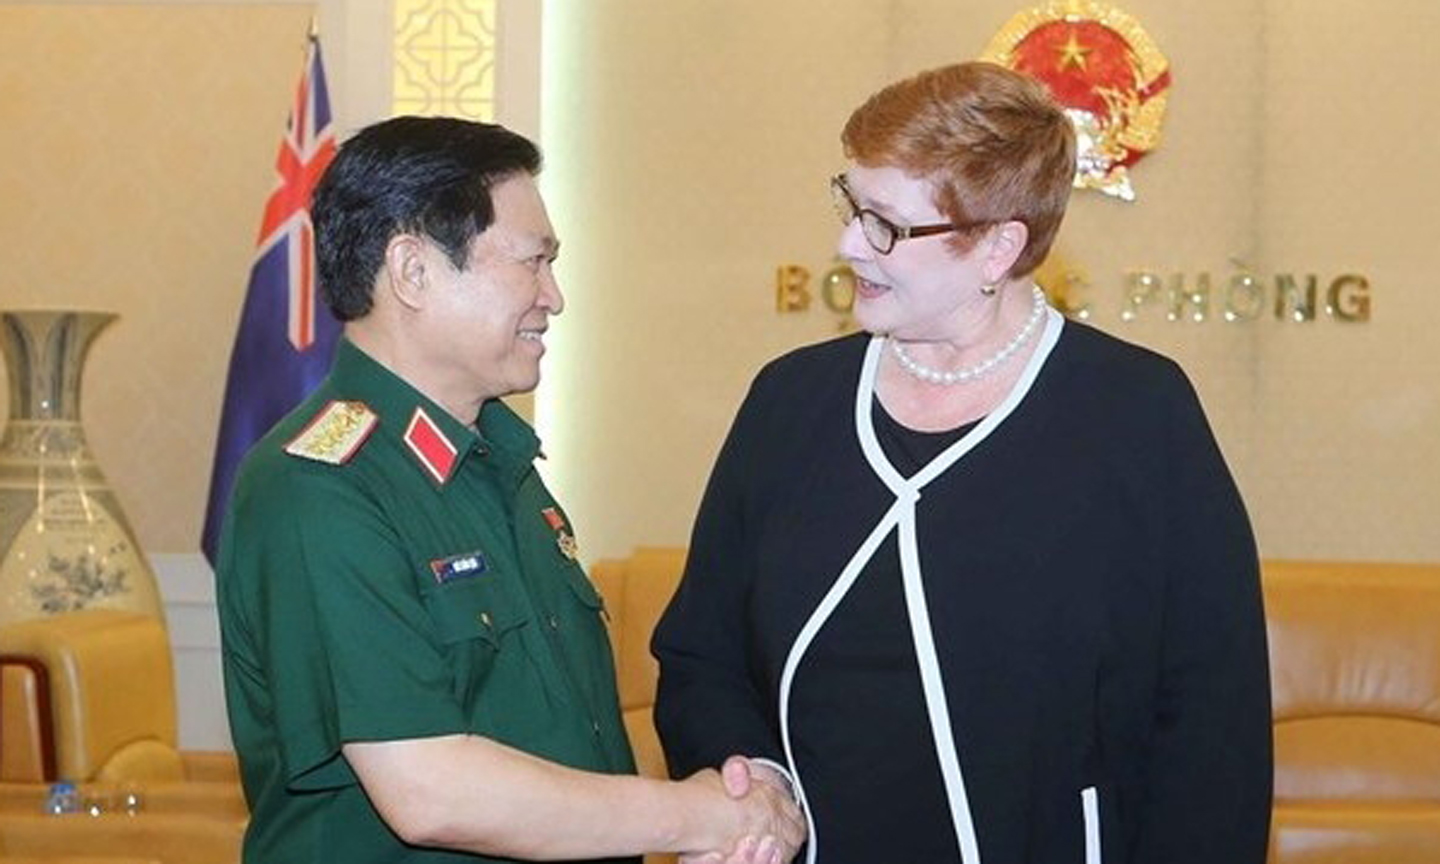 Minister of National Defence Gen. Ngo Xuan Lich (L) shakes hands with Australian Minister for Foreign Affairs Senator Marise Payne (Photo: VNA)